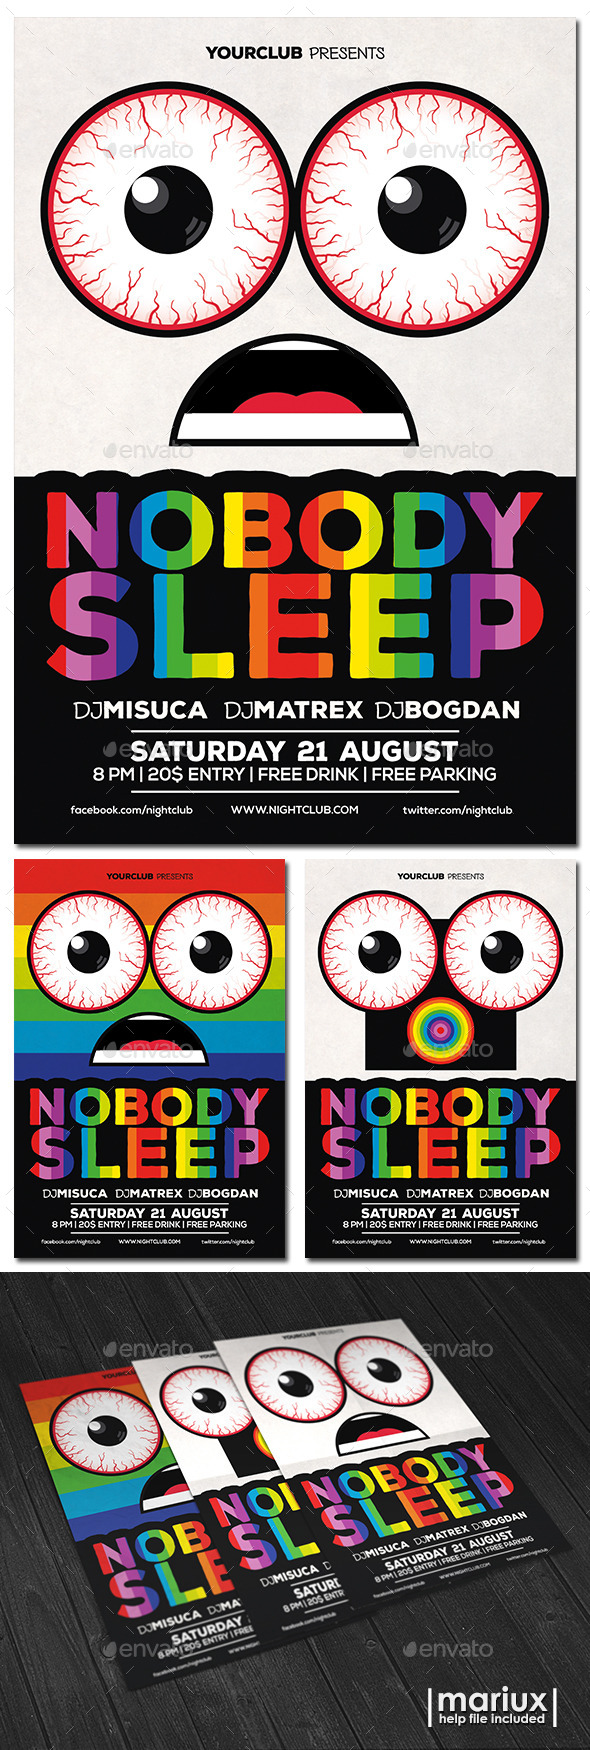 Nobody Sleep Party Flyer - Clubs & Parties Events